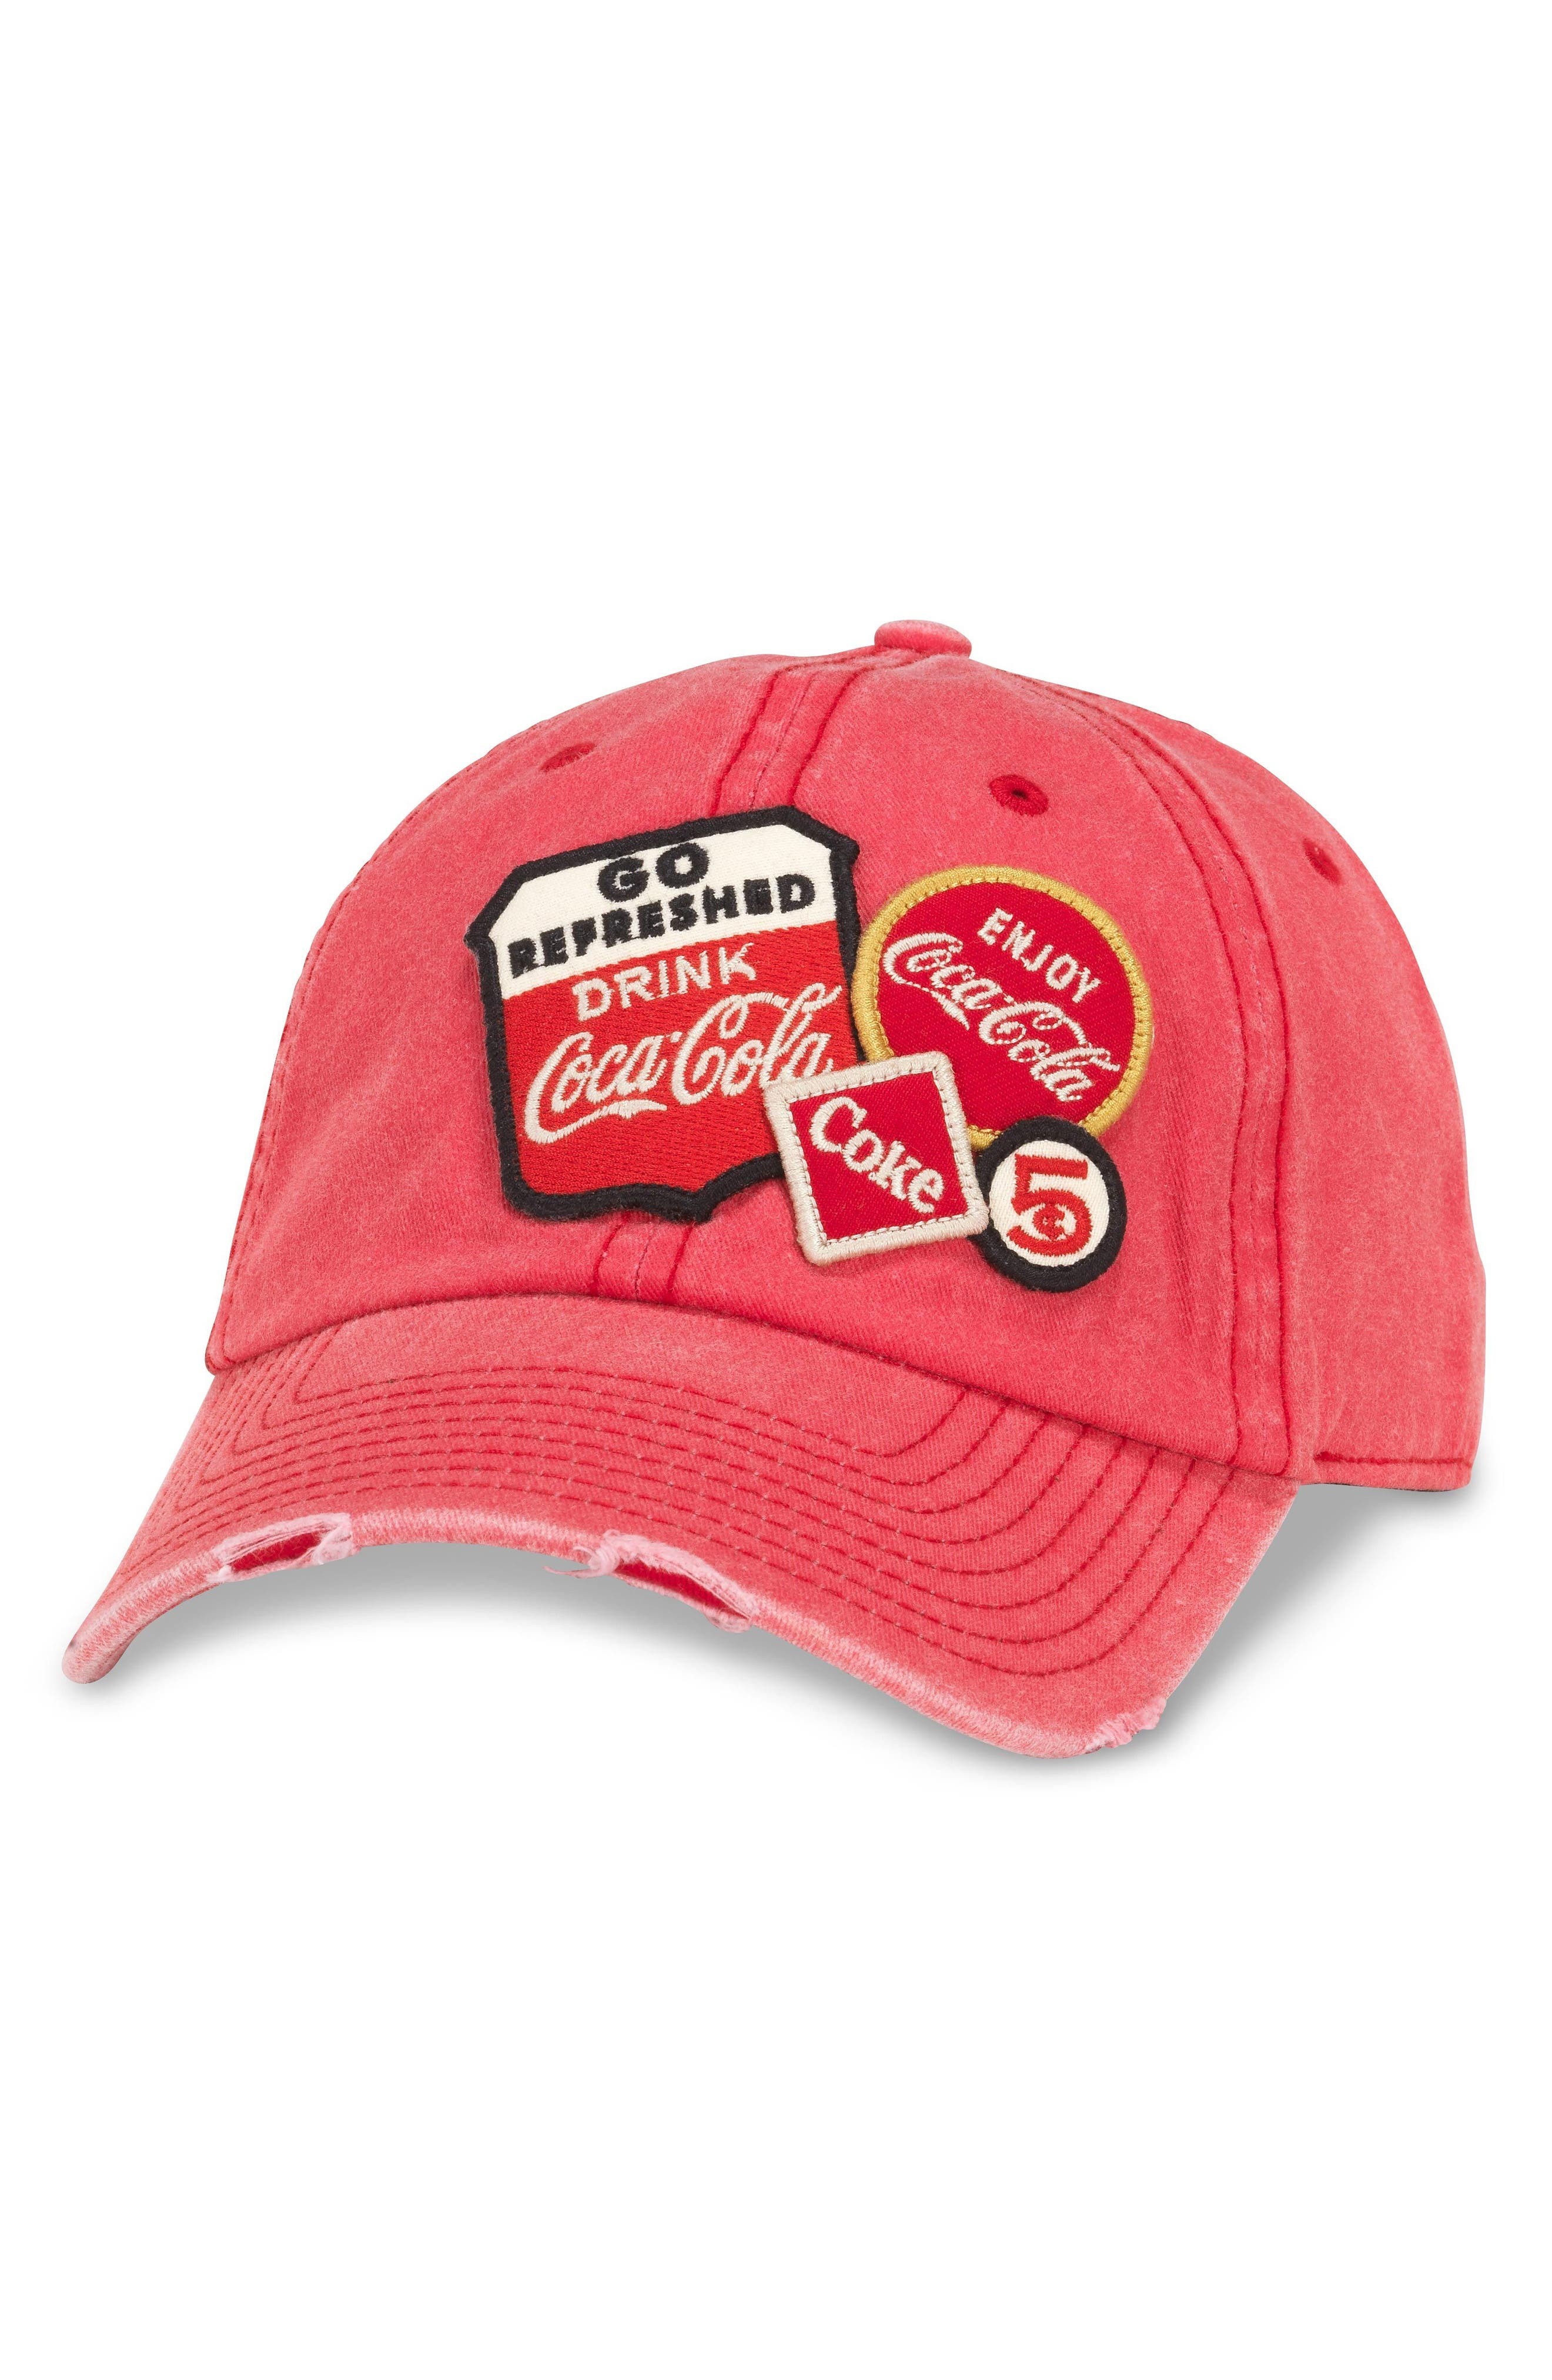 Iconic - Coke<sup>®</sup> Ball Cap,                             Main thumbnail 1, color,                             Red